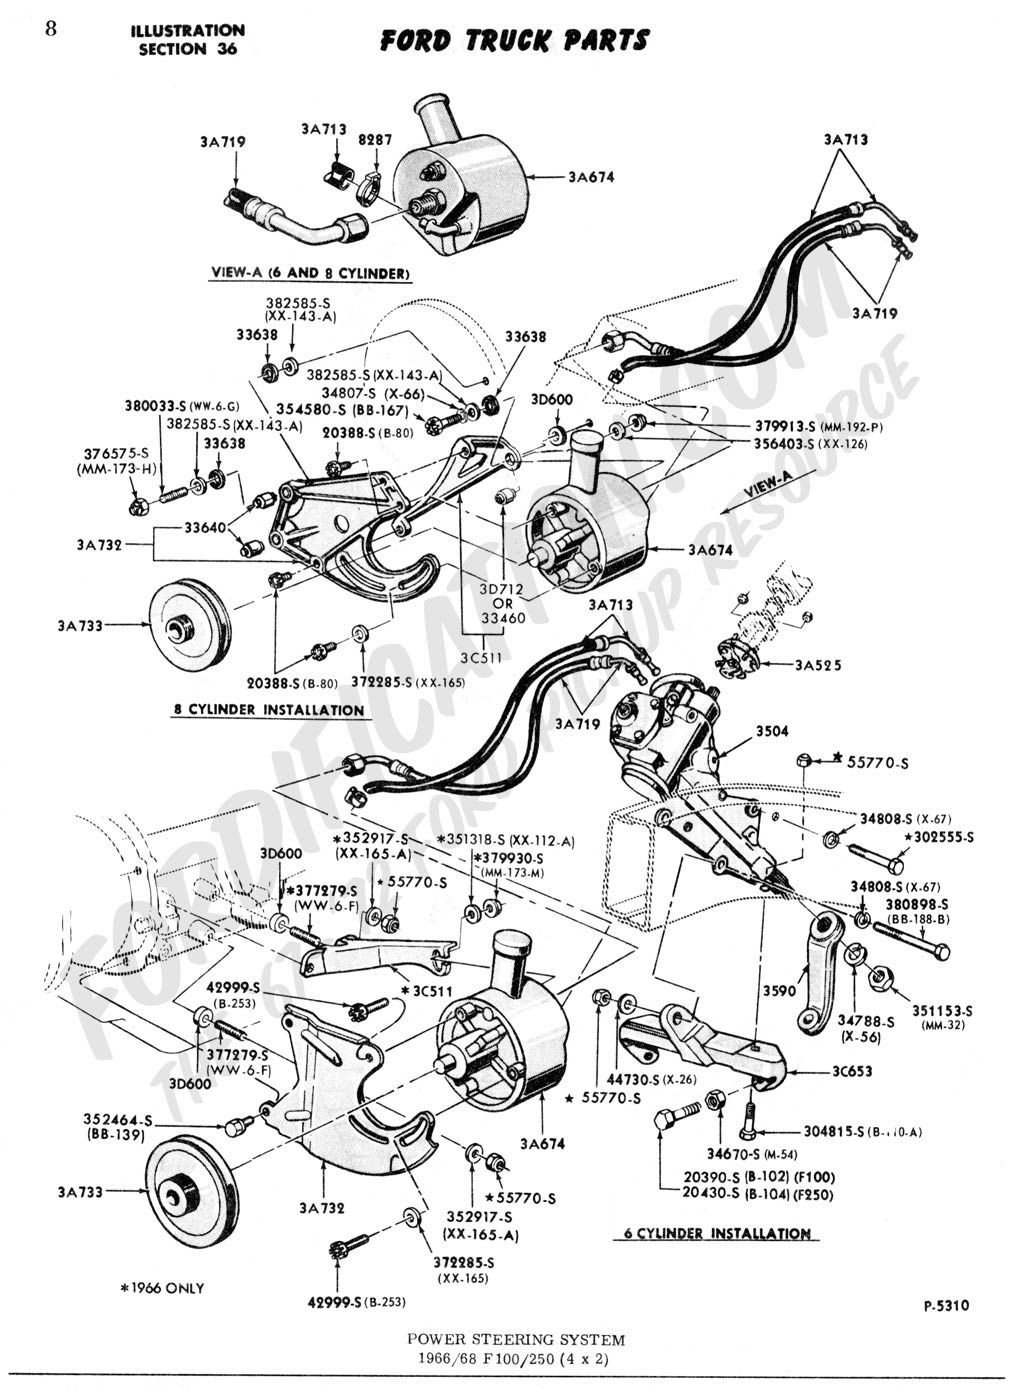 F250 Steering Diagram Leviton 3 Way Led Dimmer Switch Wiring 1977 Ford Truck Power System